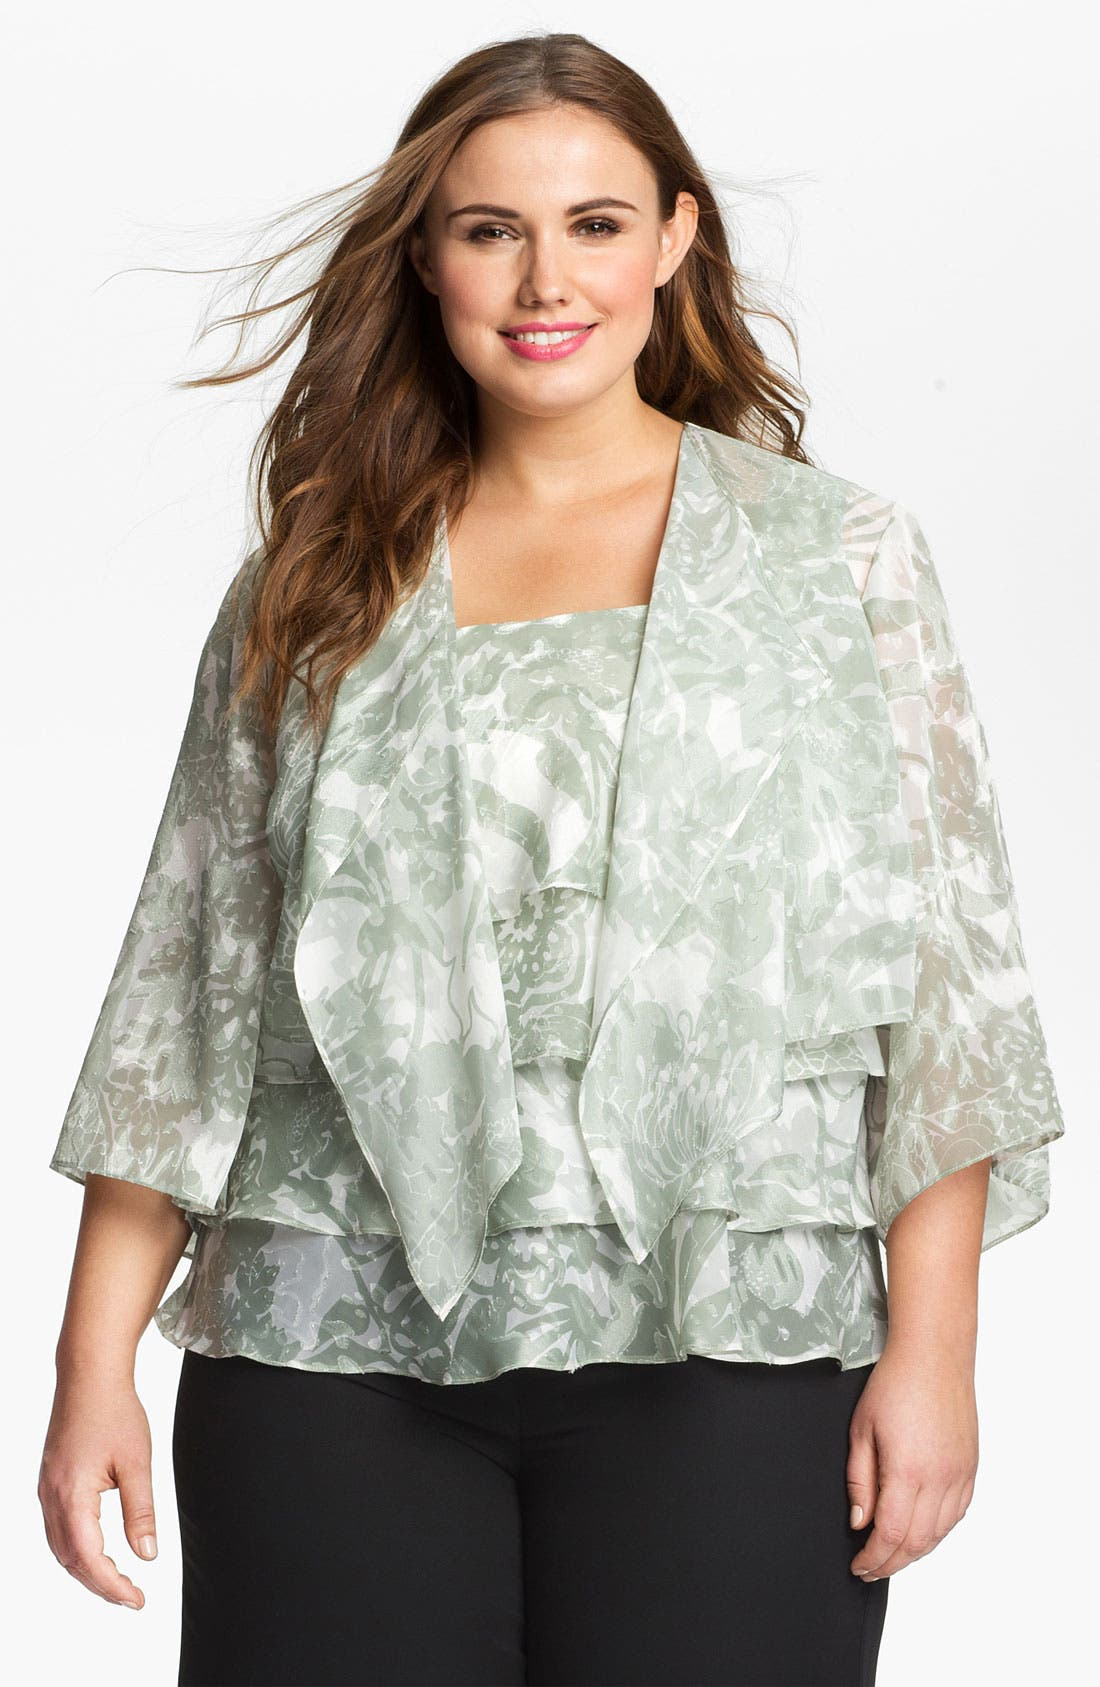 Alternate Image 1 Selected - Alex Evenings Print Chiffon Twinset (Plus)